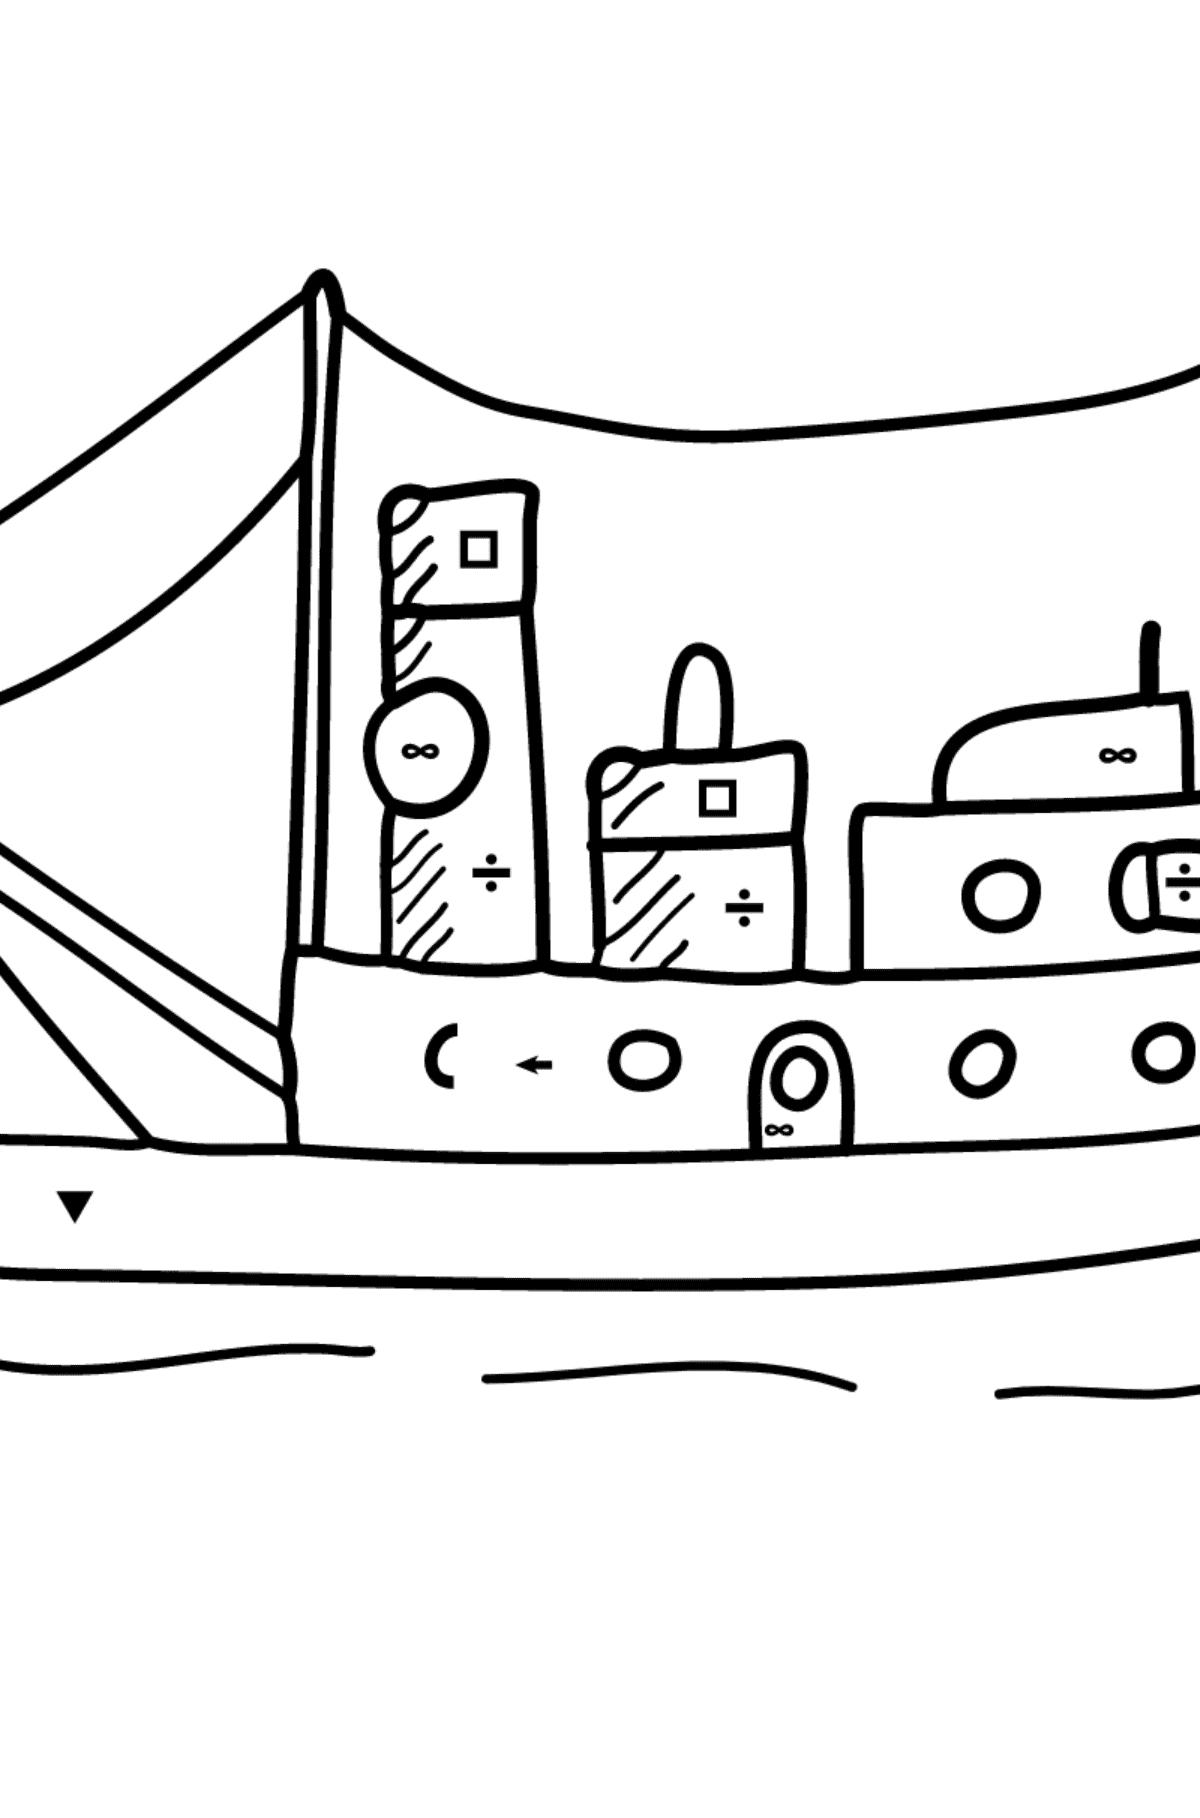 Coloring Page - A Cargo Ship - Coloring by Symbols for Children